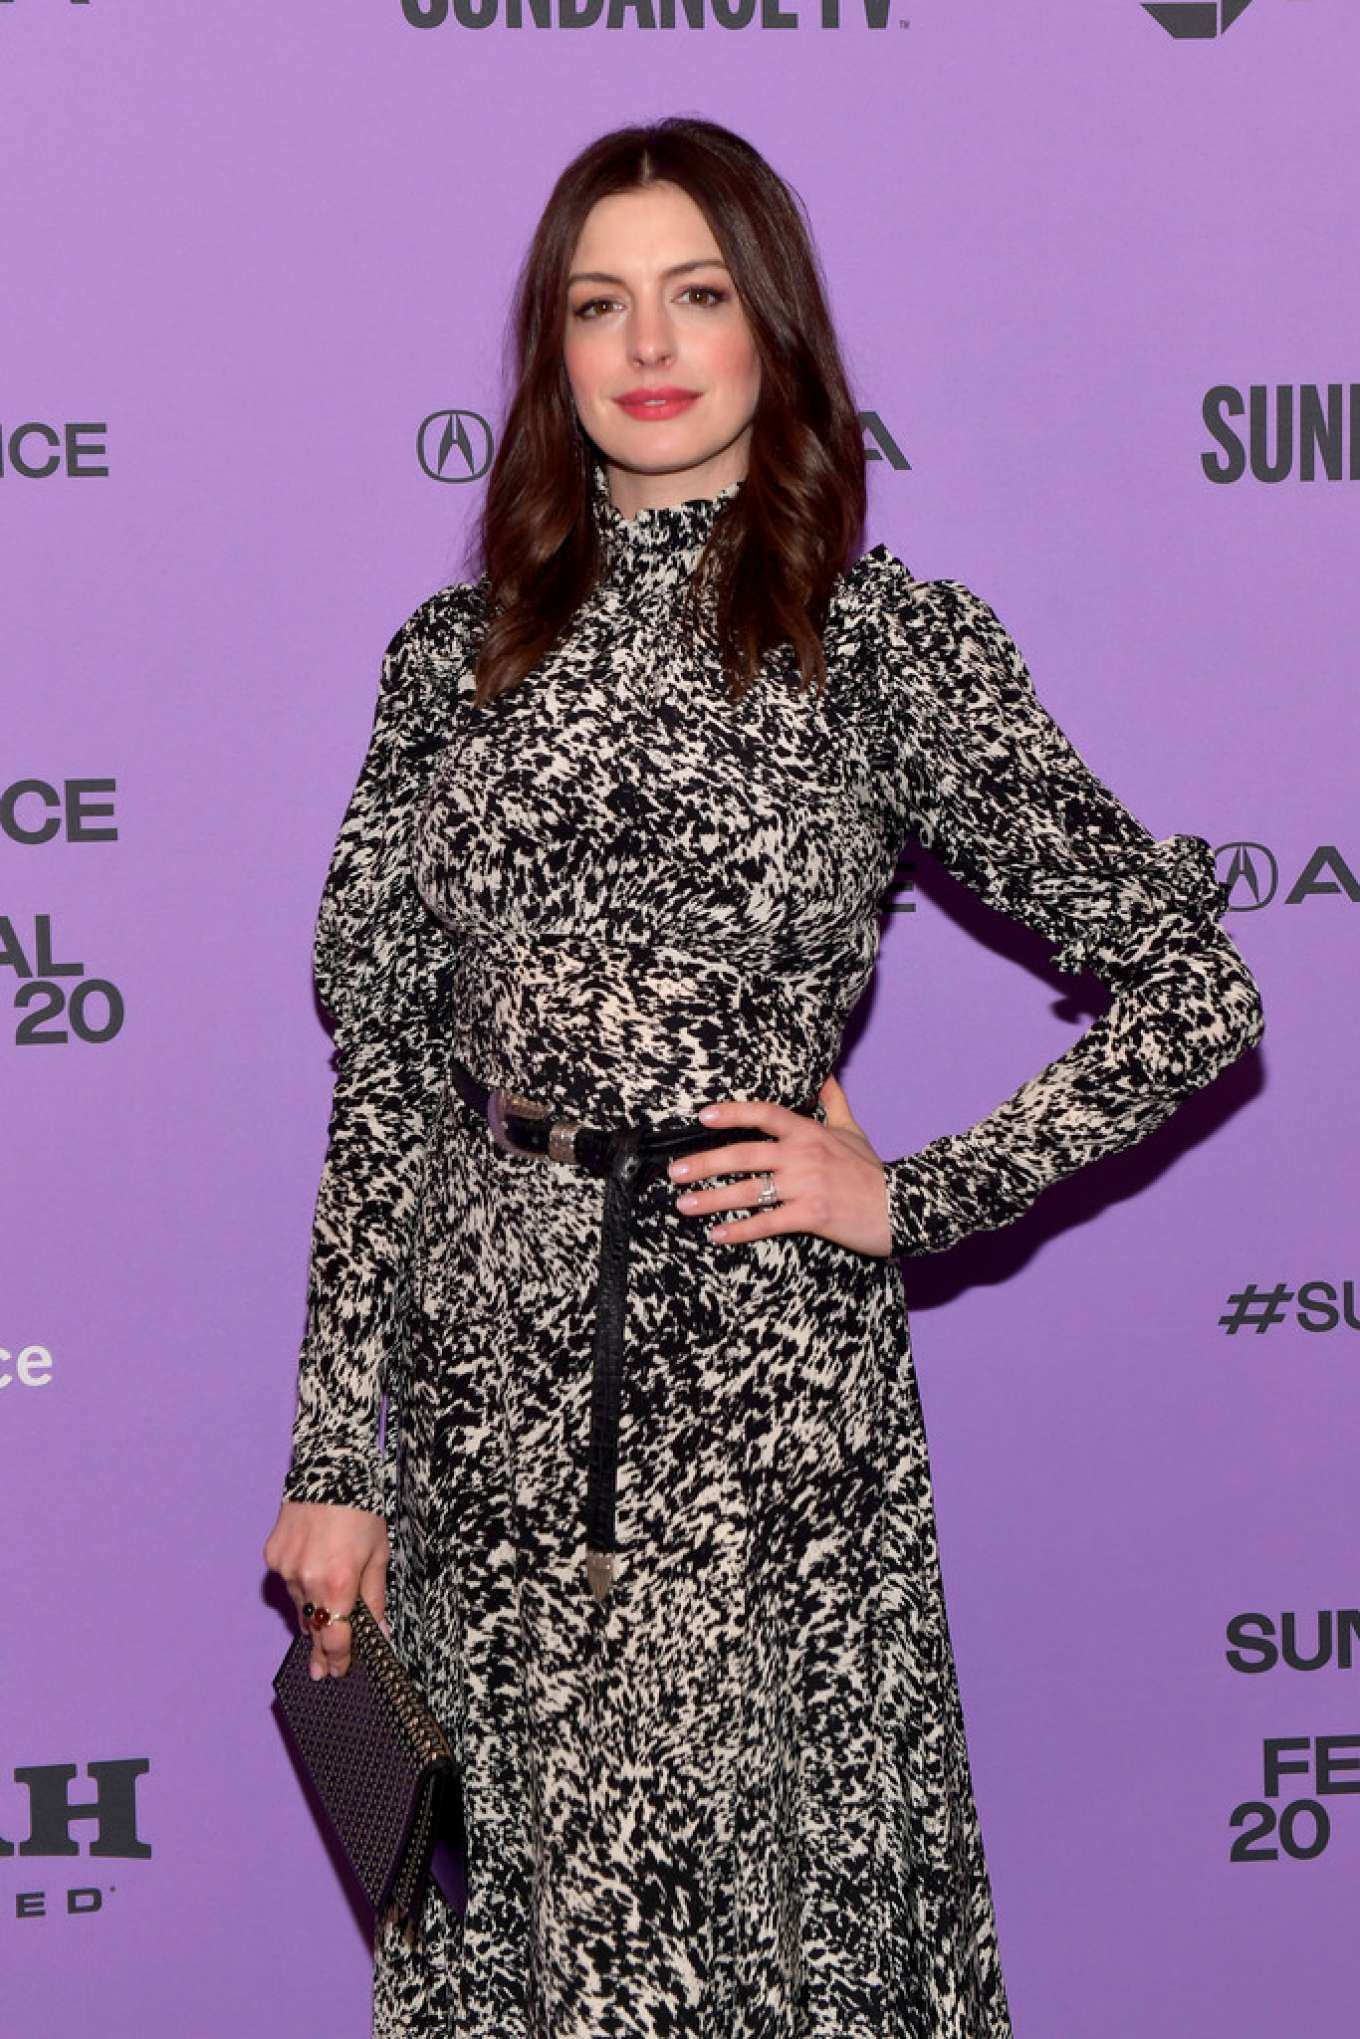 Anne Hathaway - 2020 Sundance Film Festival - 'The Last Thing He Wanted' Premiere in Park City